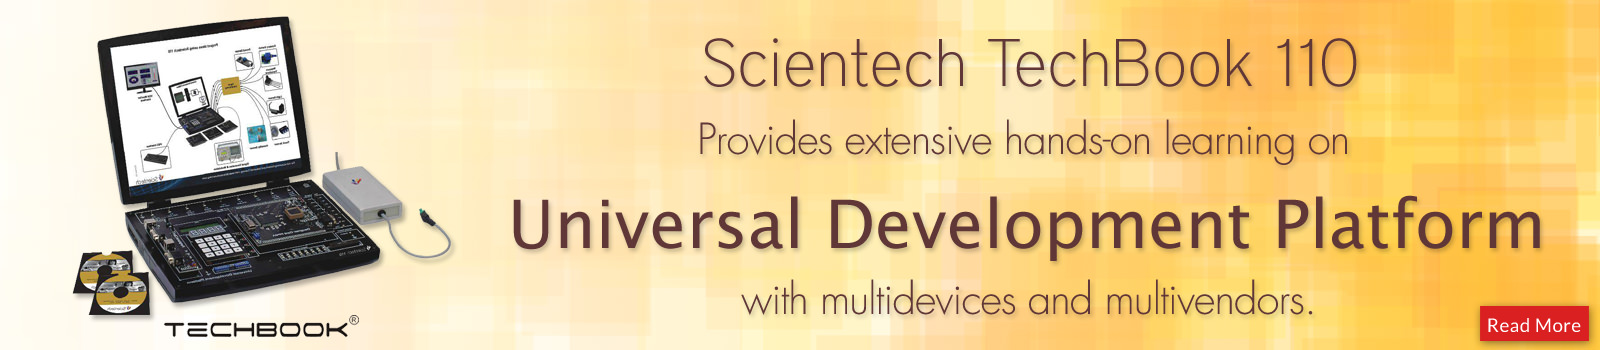 Universal Development Platform - Scientech 110